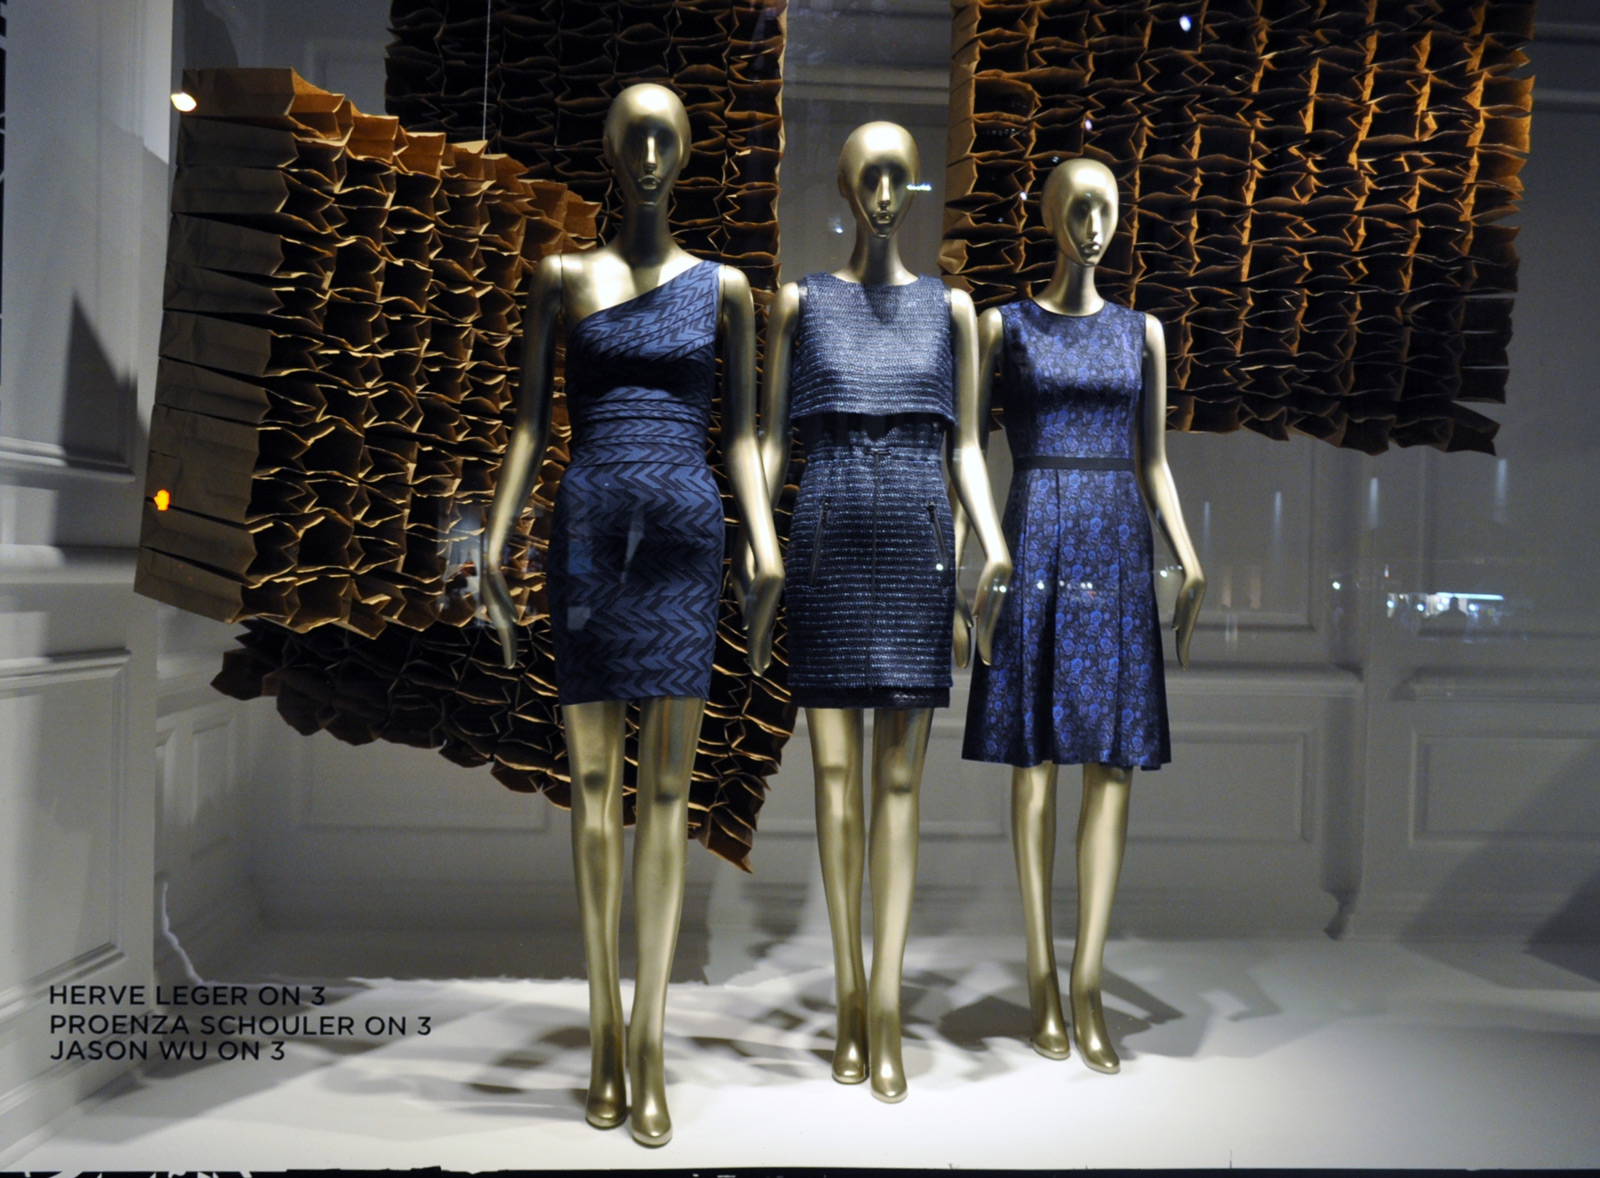 This window display from New York is decorated with something that looks like opened up cartoon boxes and three mannequins dressed in blue.